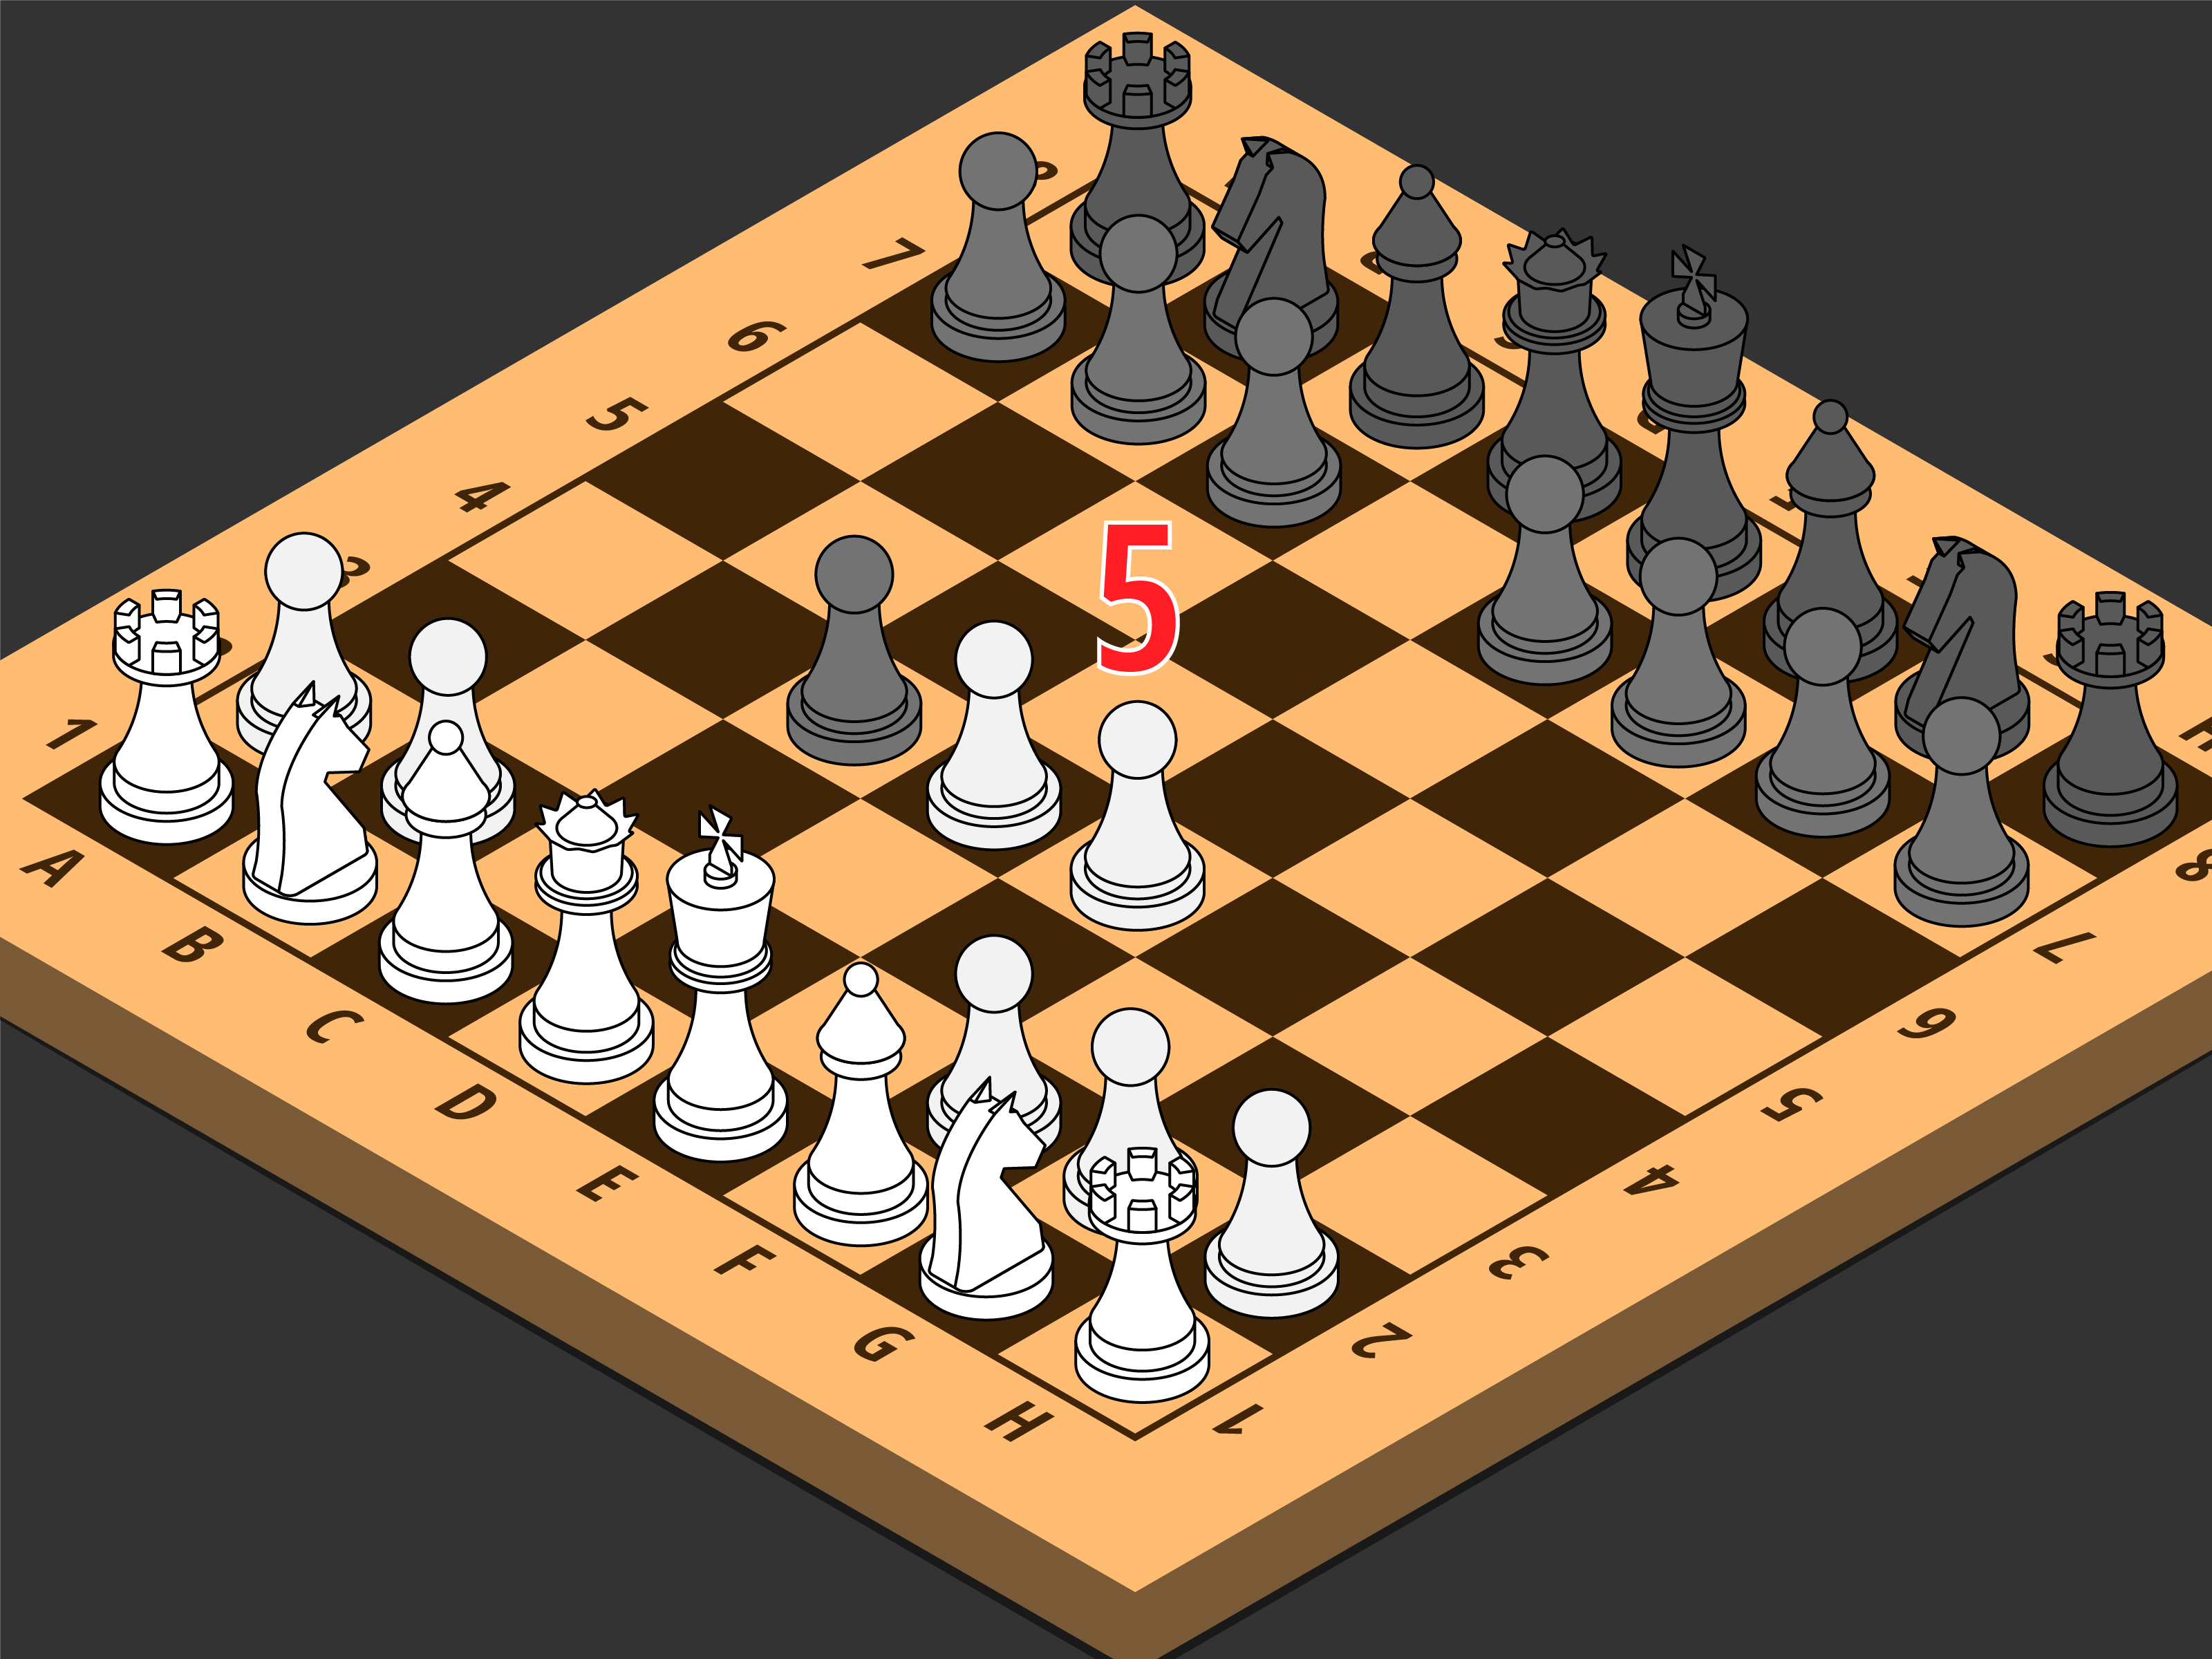 Two Move Checkmate In Chess Diagram A Is Called Quotat